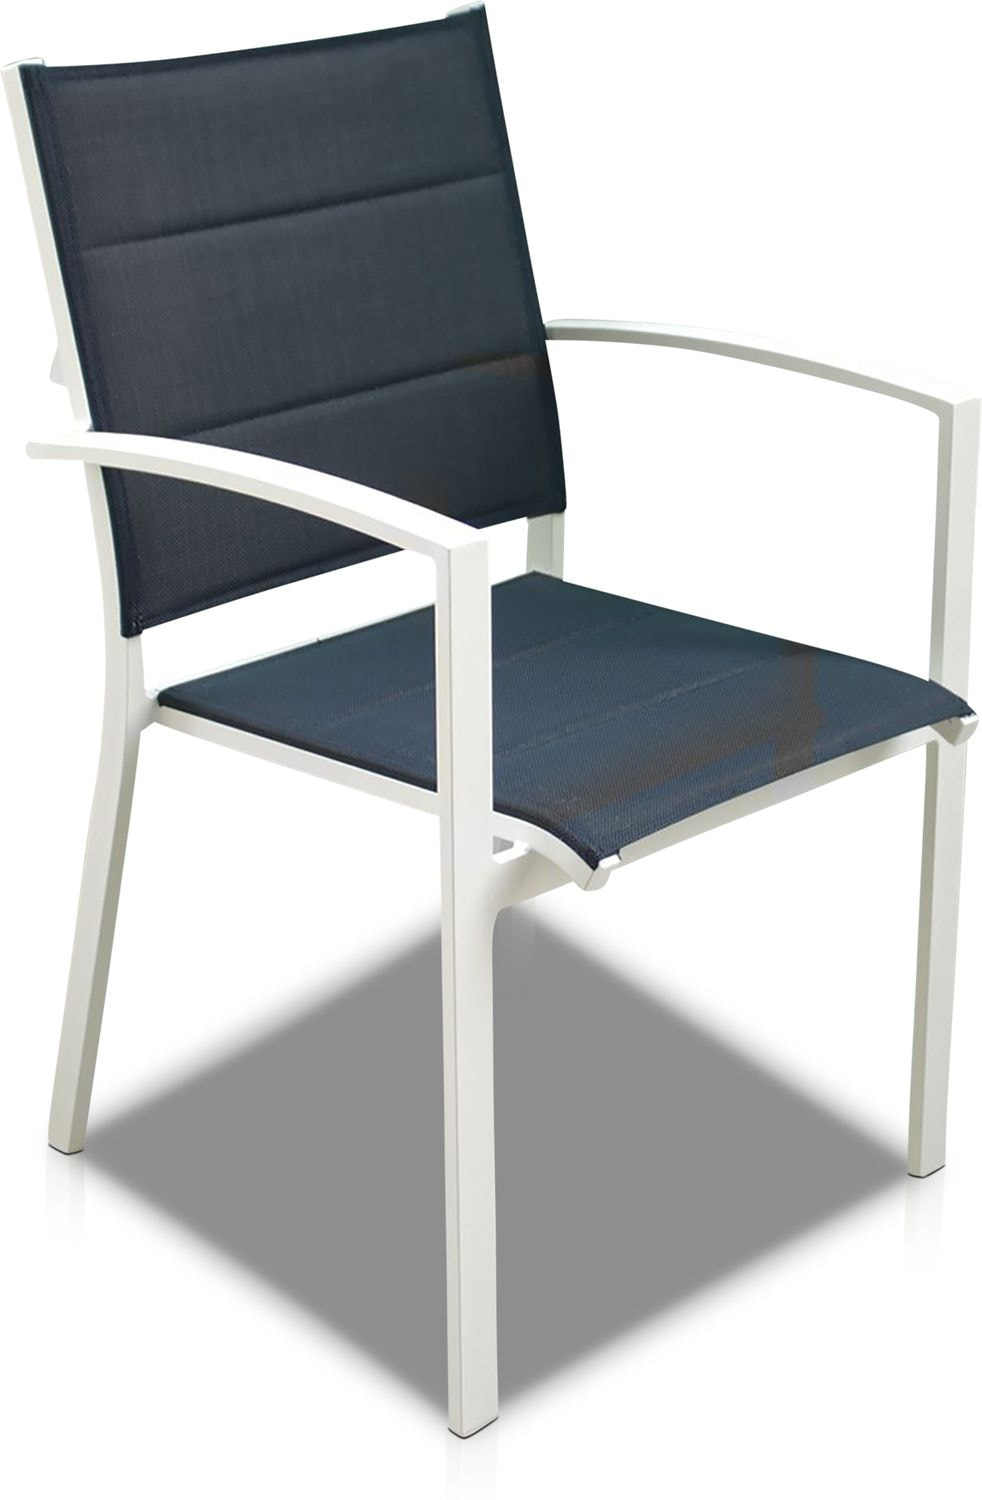 Outdoor Furniture - Edgewater Set of 4 Outdoor Chairs